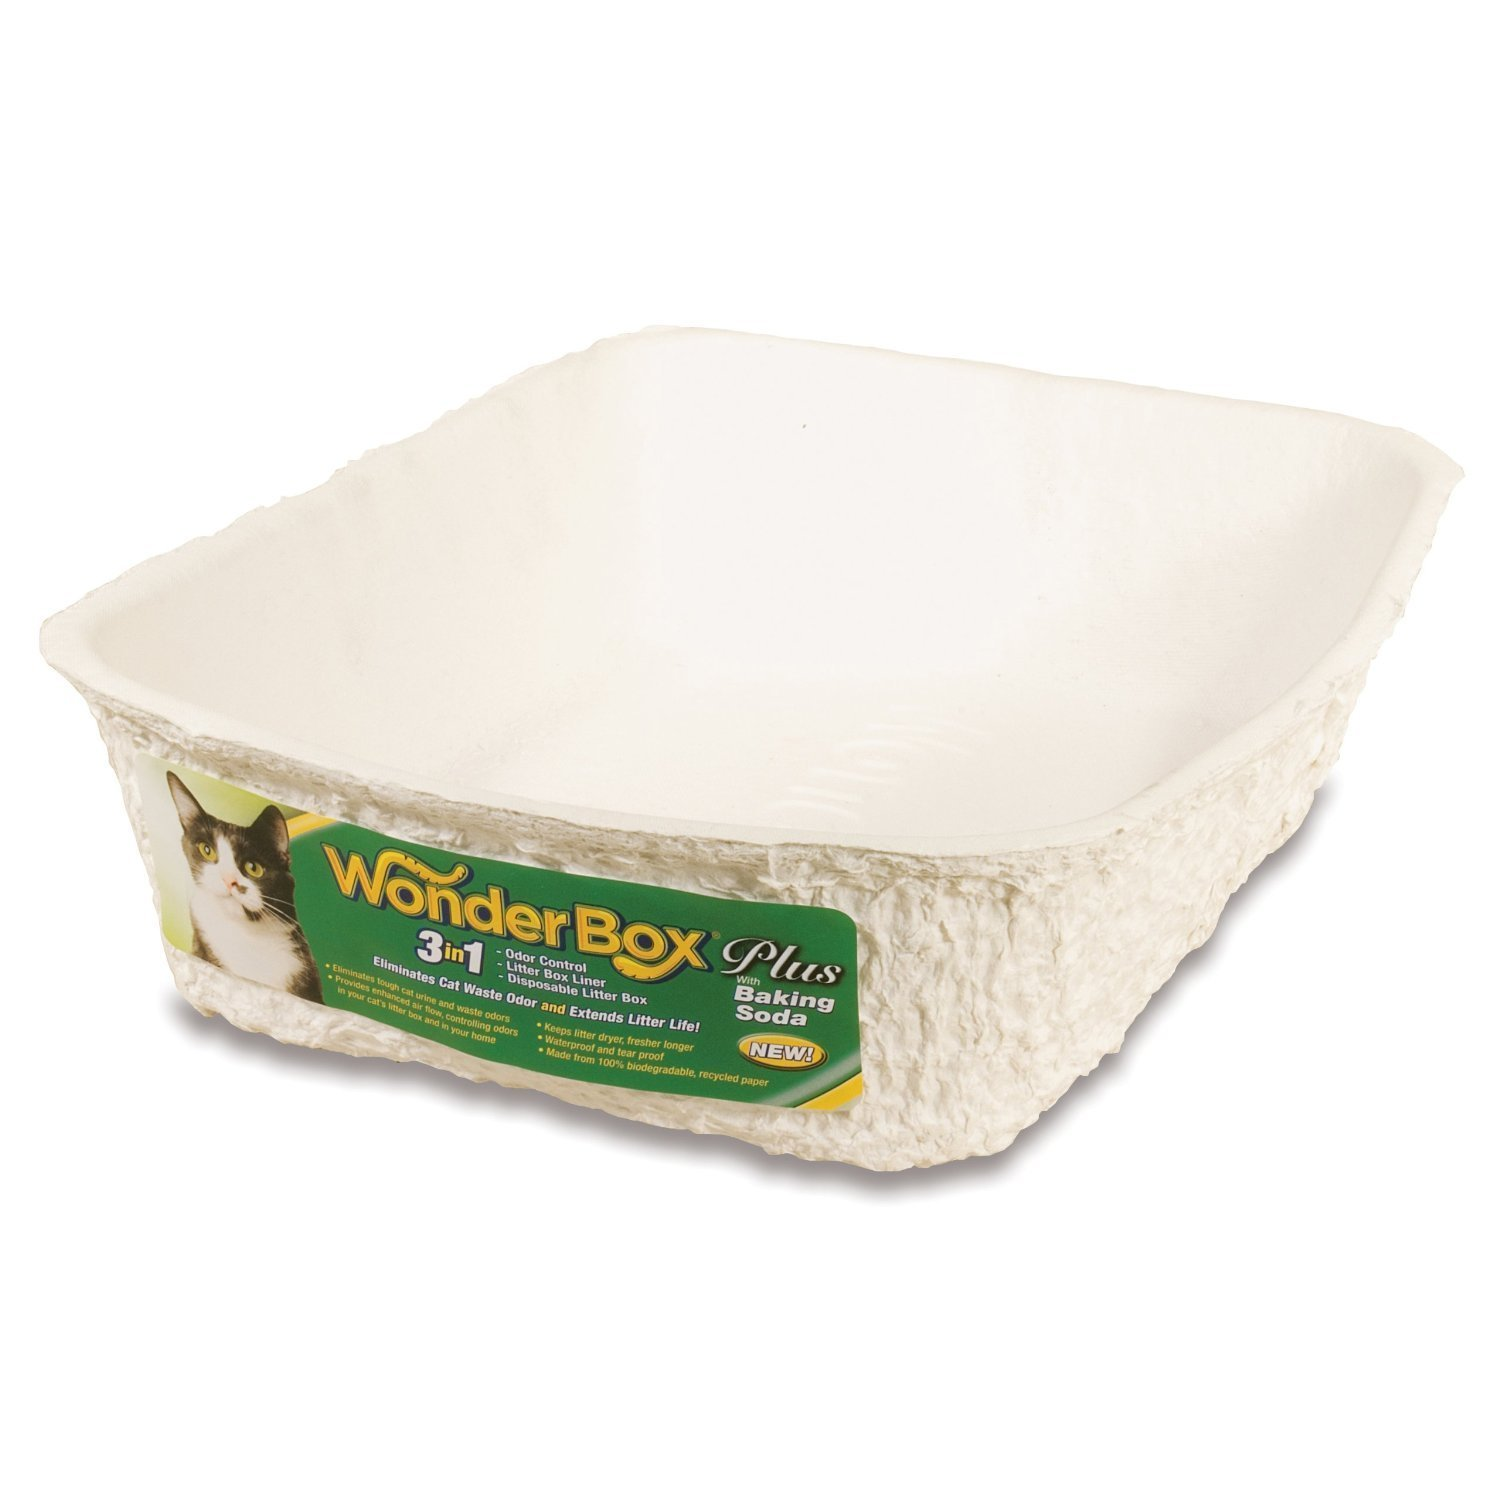 8 in 1 Pet Products Kitty's Wonderbox Size Small